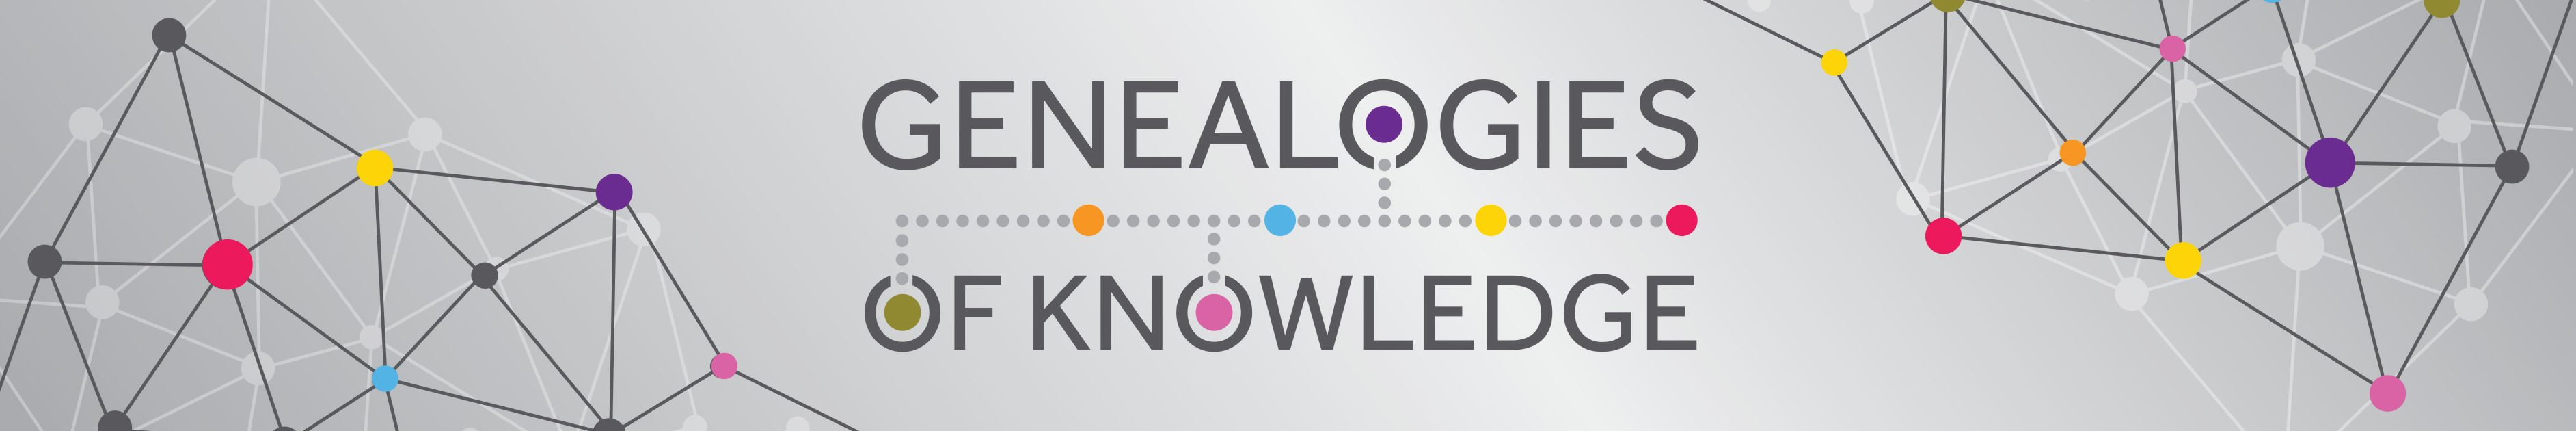 Genealogies of Knowledge